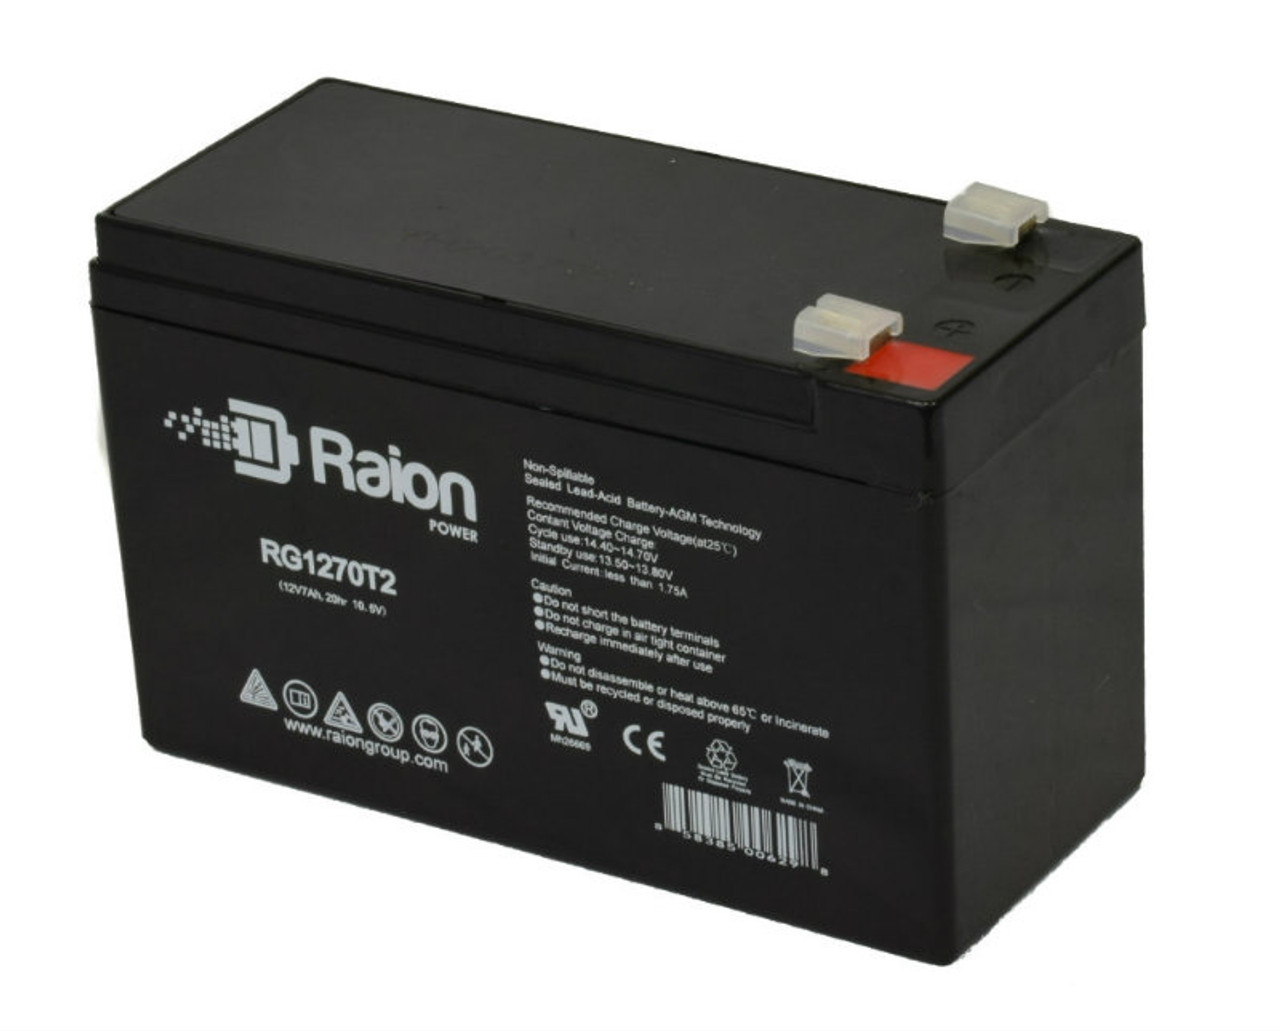 Raion Power 12V 7Ah SLA Battery With T1 Terminals For Vision CP1270SL